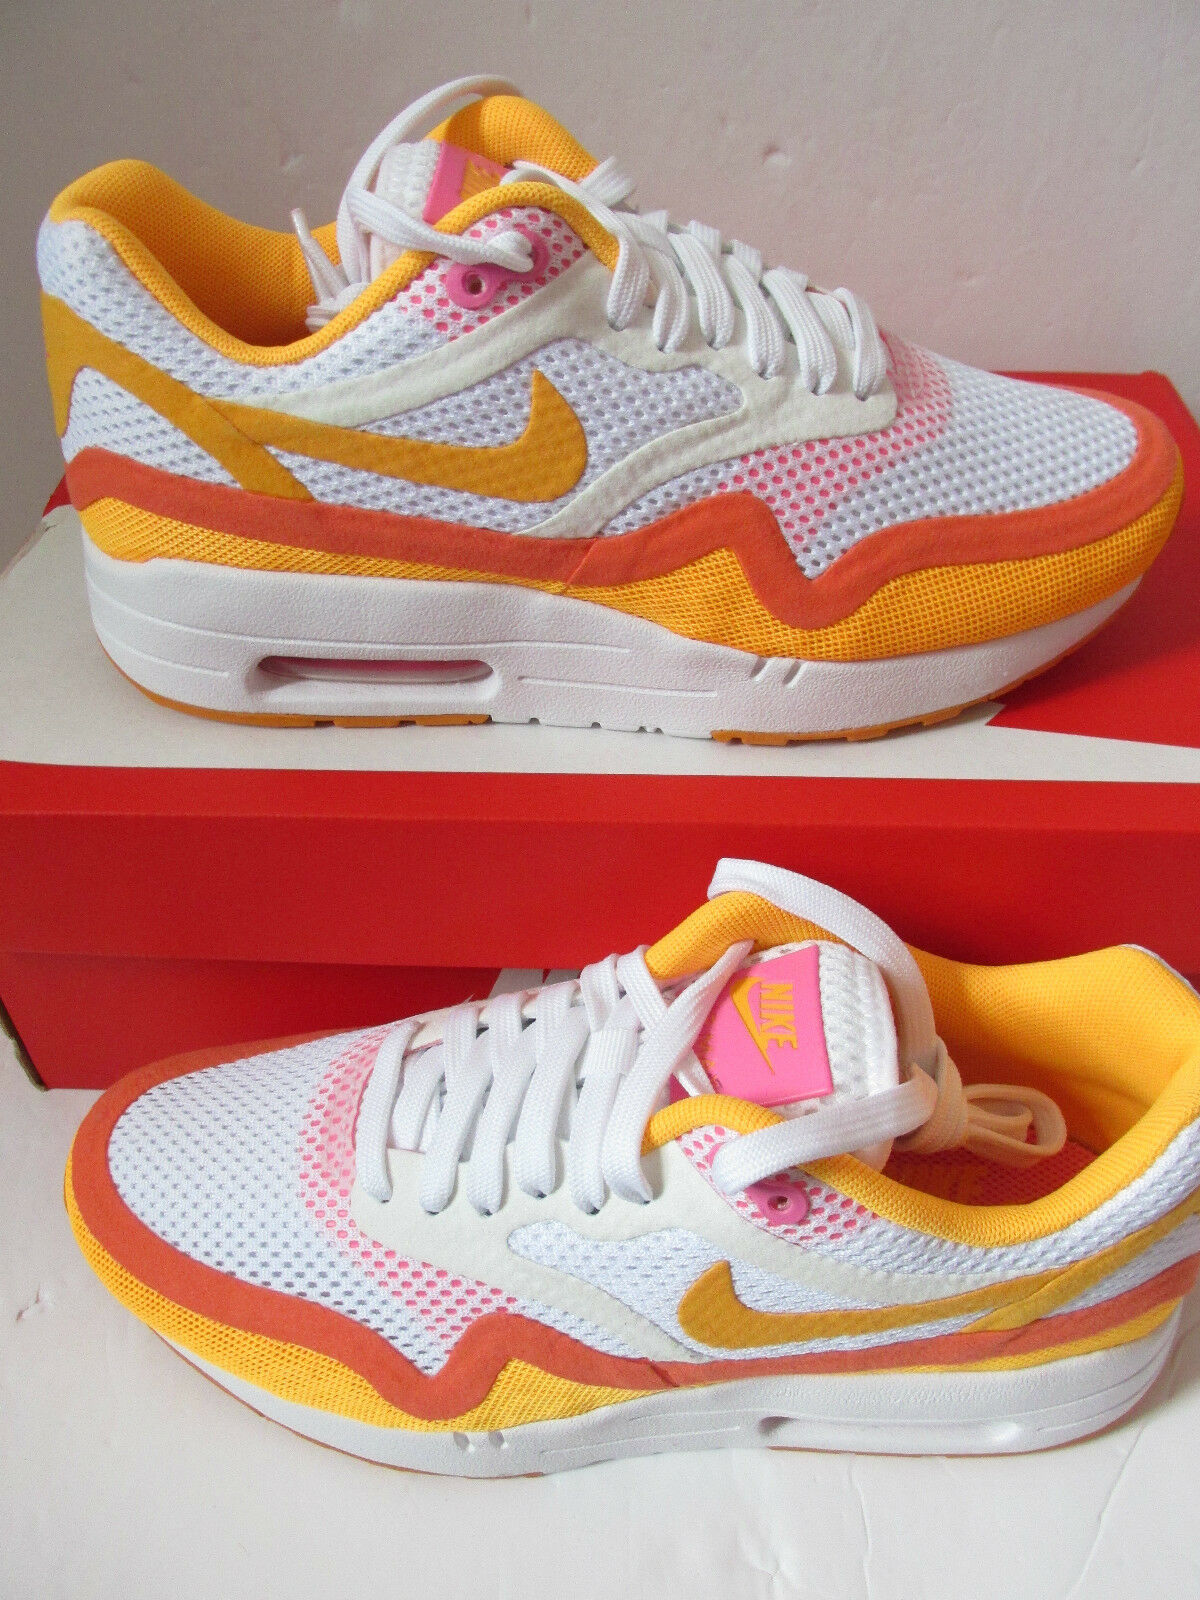 nike Femme air max 1 BR BREATHE running trainers 644443 101 sneakers chaussures